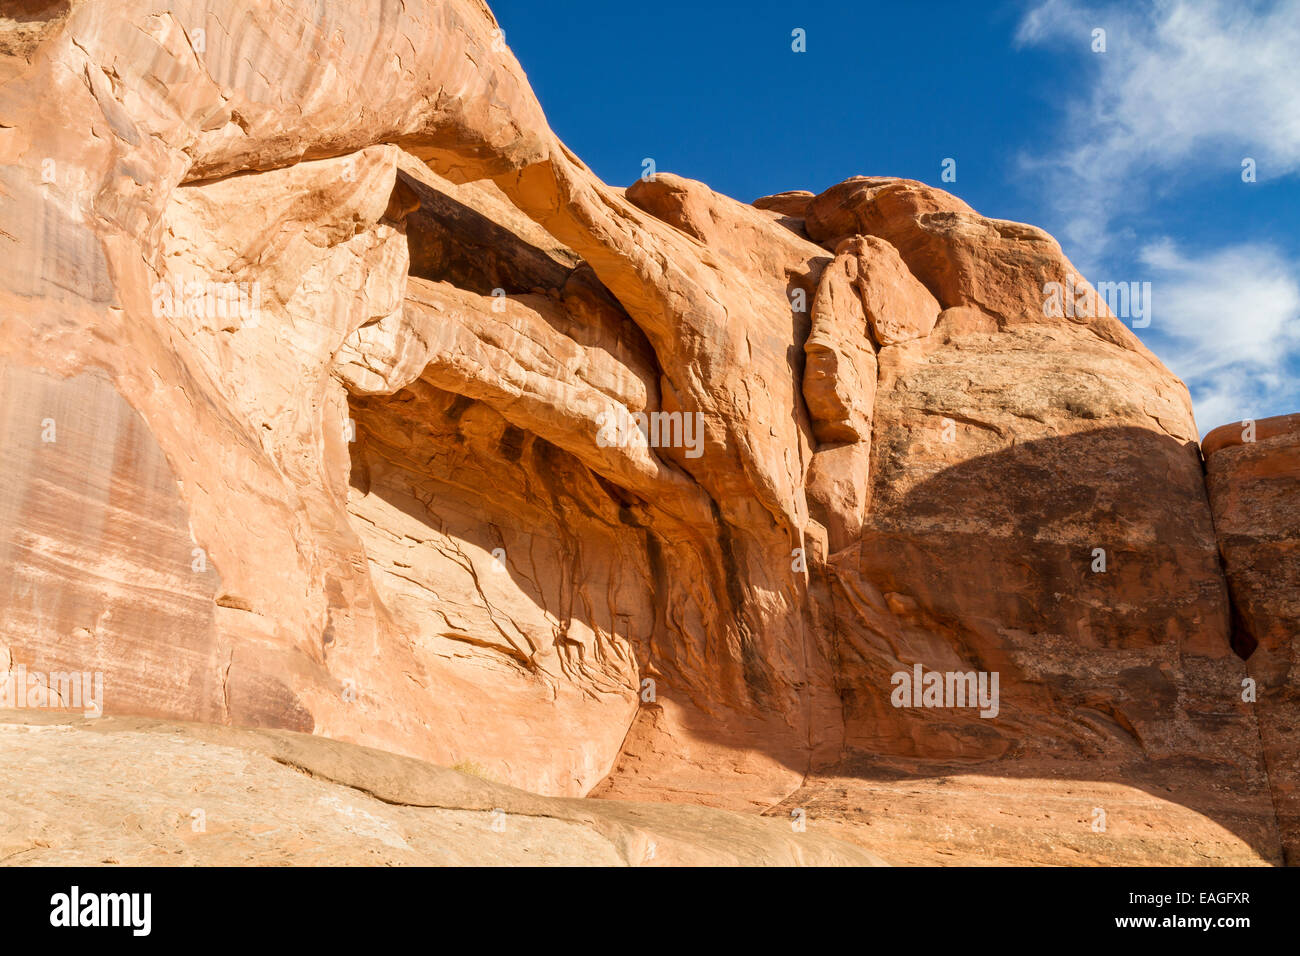 A layered arch near Tower Arch in the Klondike Bluffs area of Arches National Park, Utah. - Stock Image